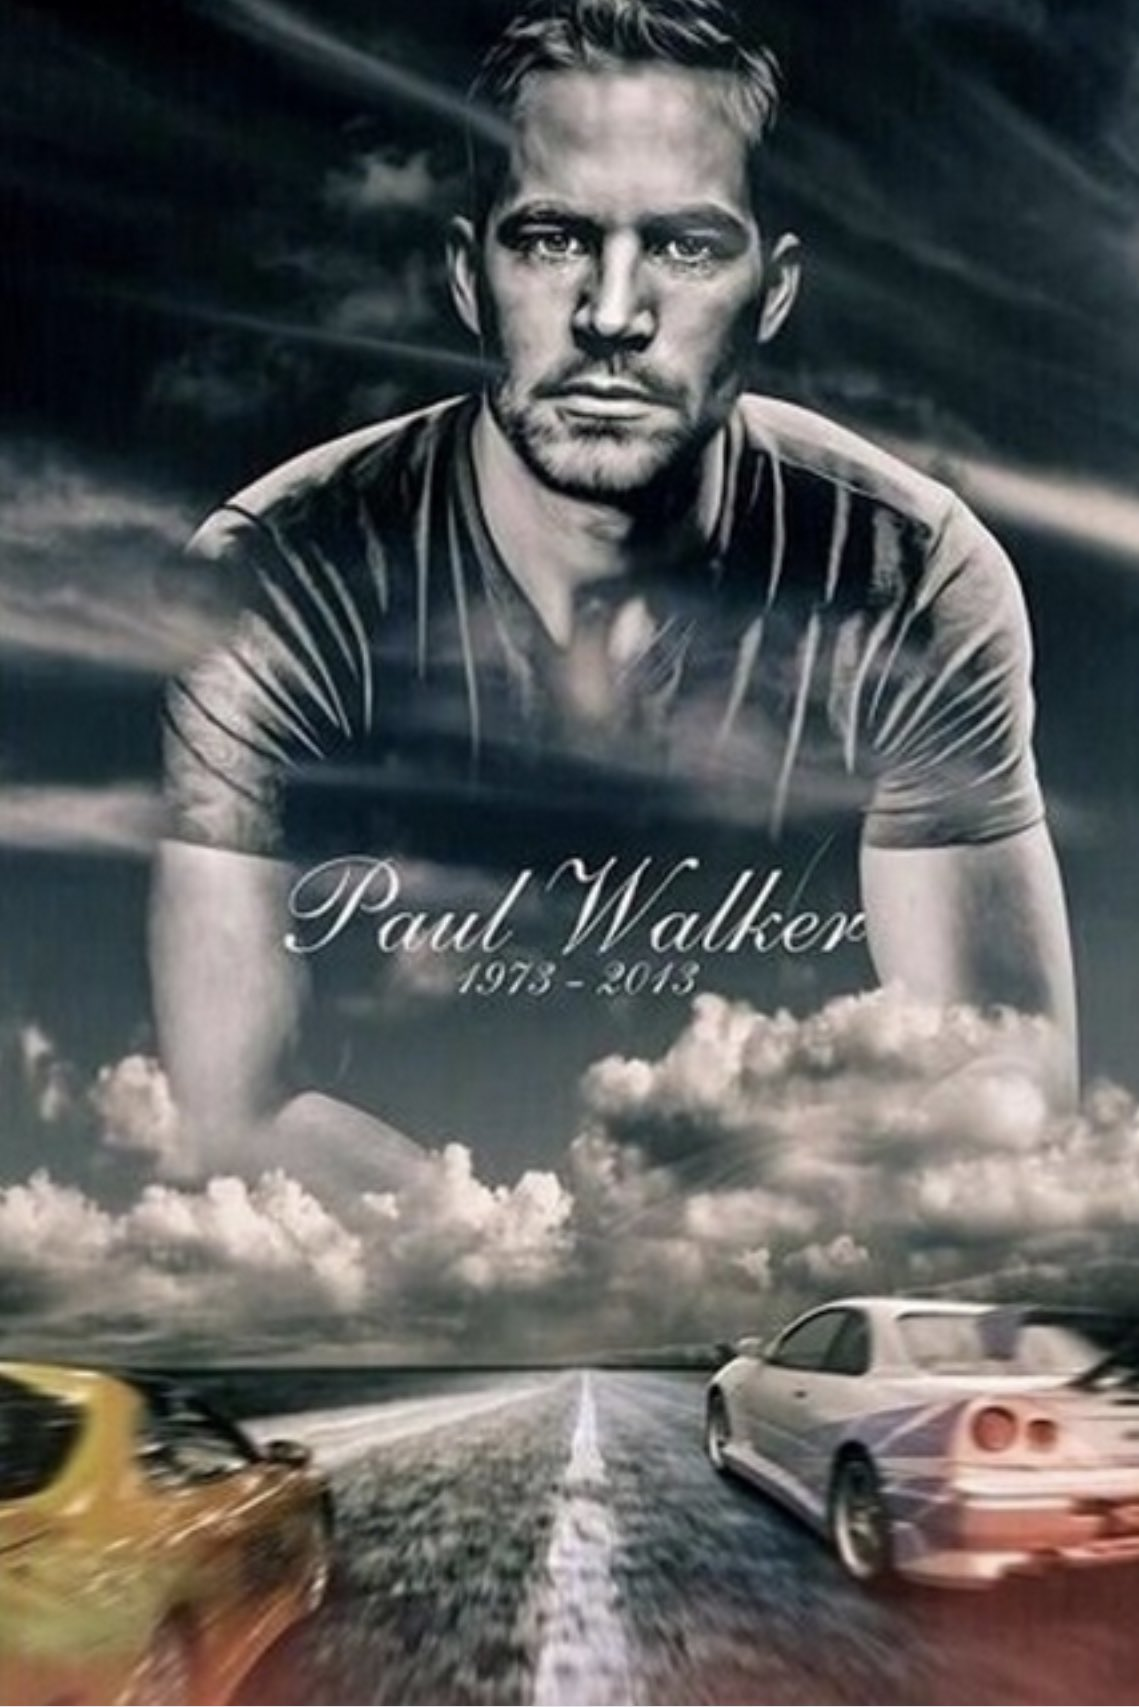 Not TJ related, but a respected birthday post to the legend. Happy birthday Paul Walker.